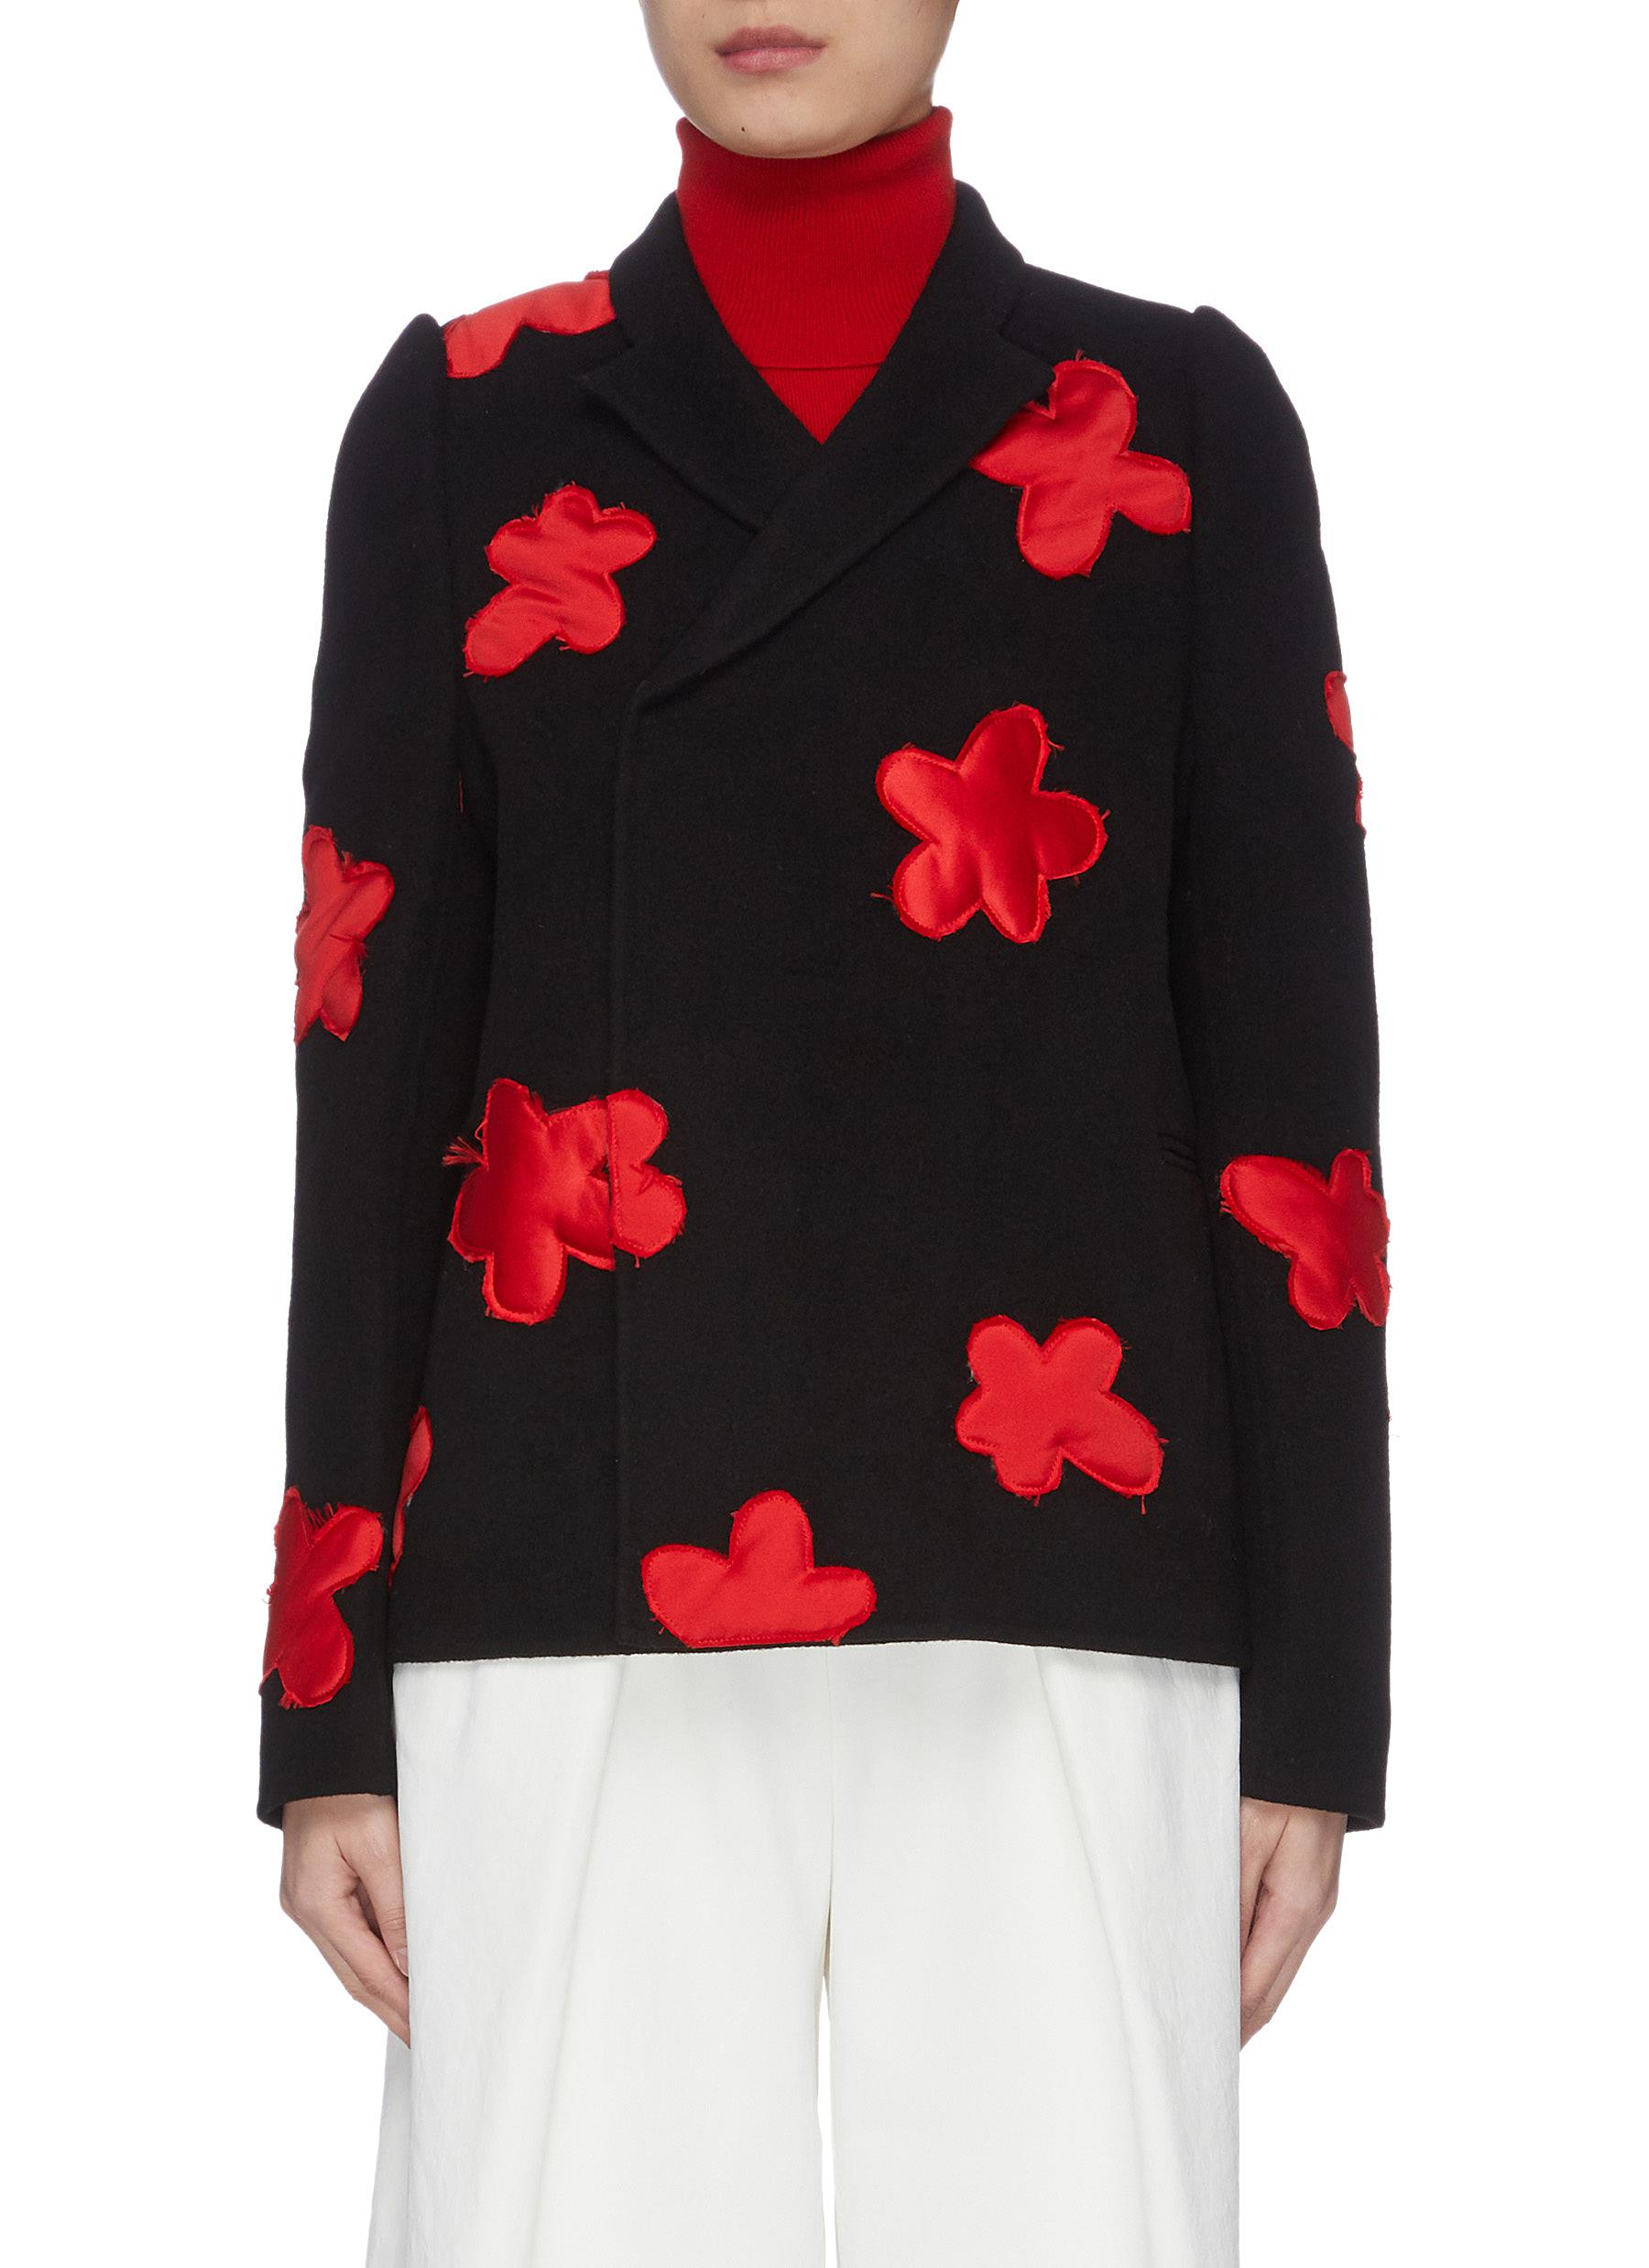 Contrast flower patch puff sleeve jacket by Shushu/Tong